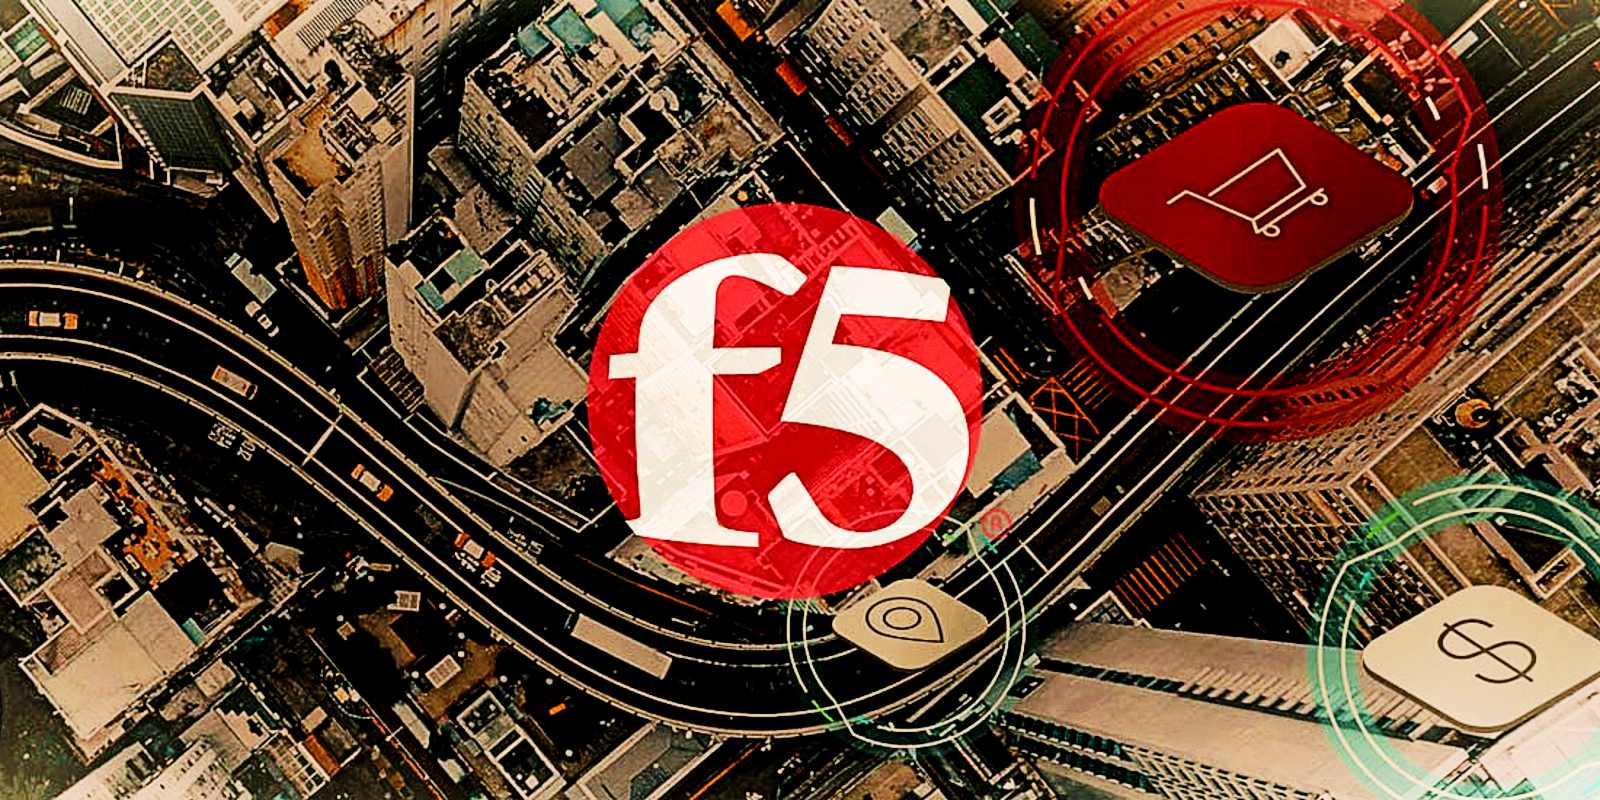 Critical F5 BIG-IP vulnerability now targeted in ongoing attacks